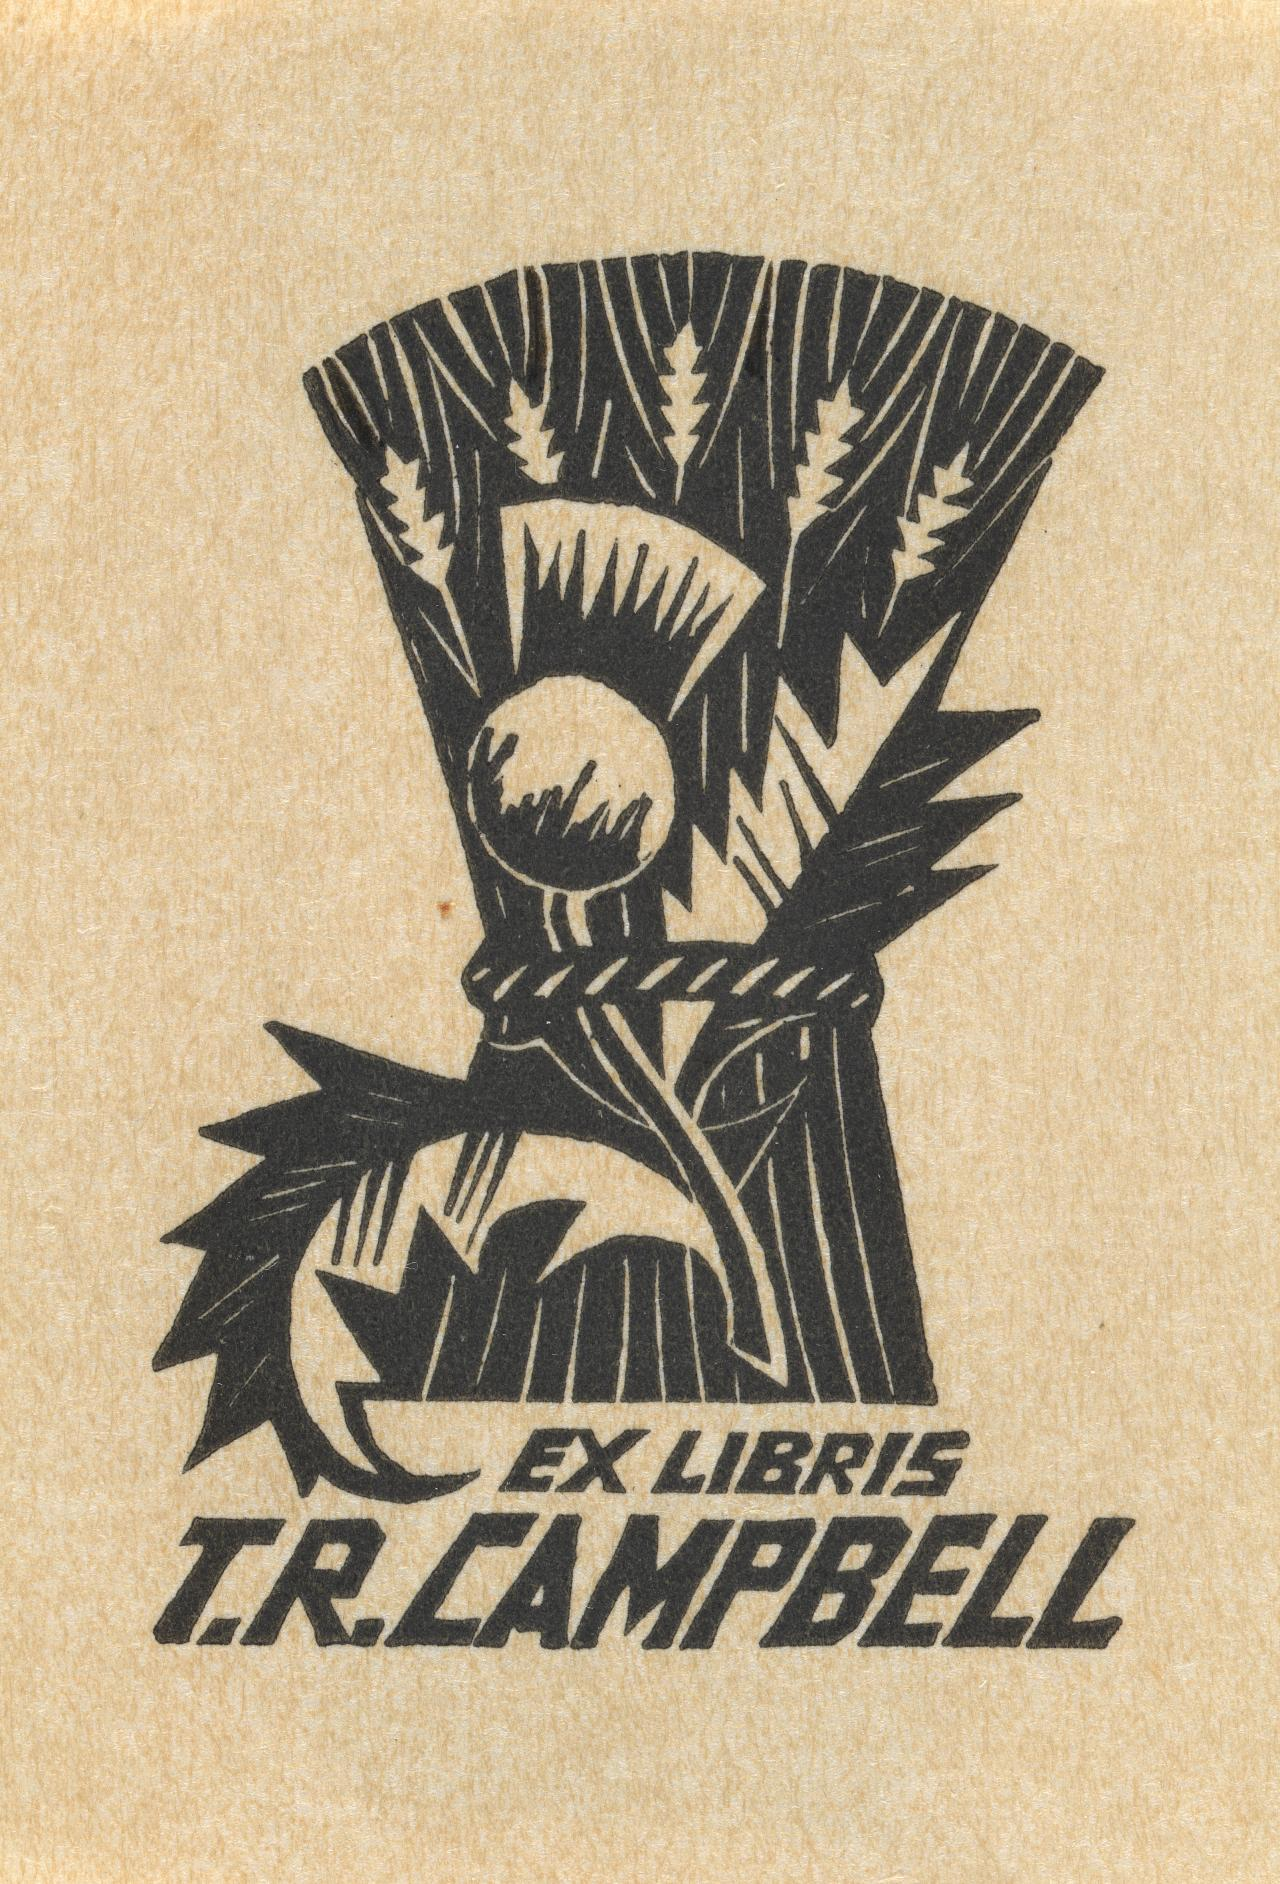 Bookplate: T. R. Campbell (Sheaf of barley)